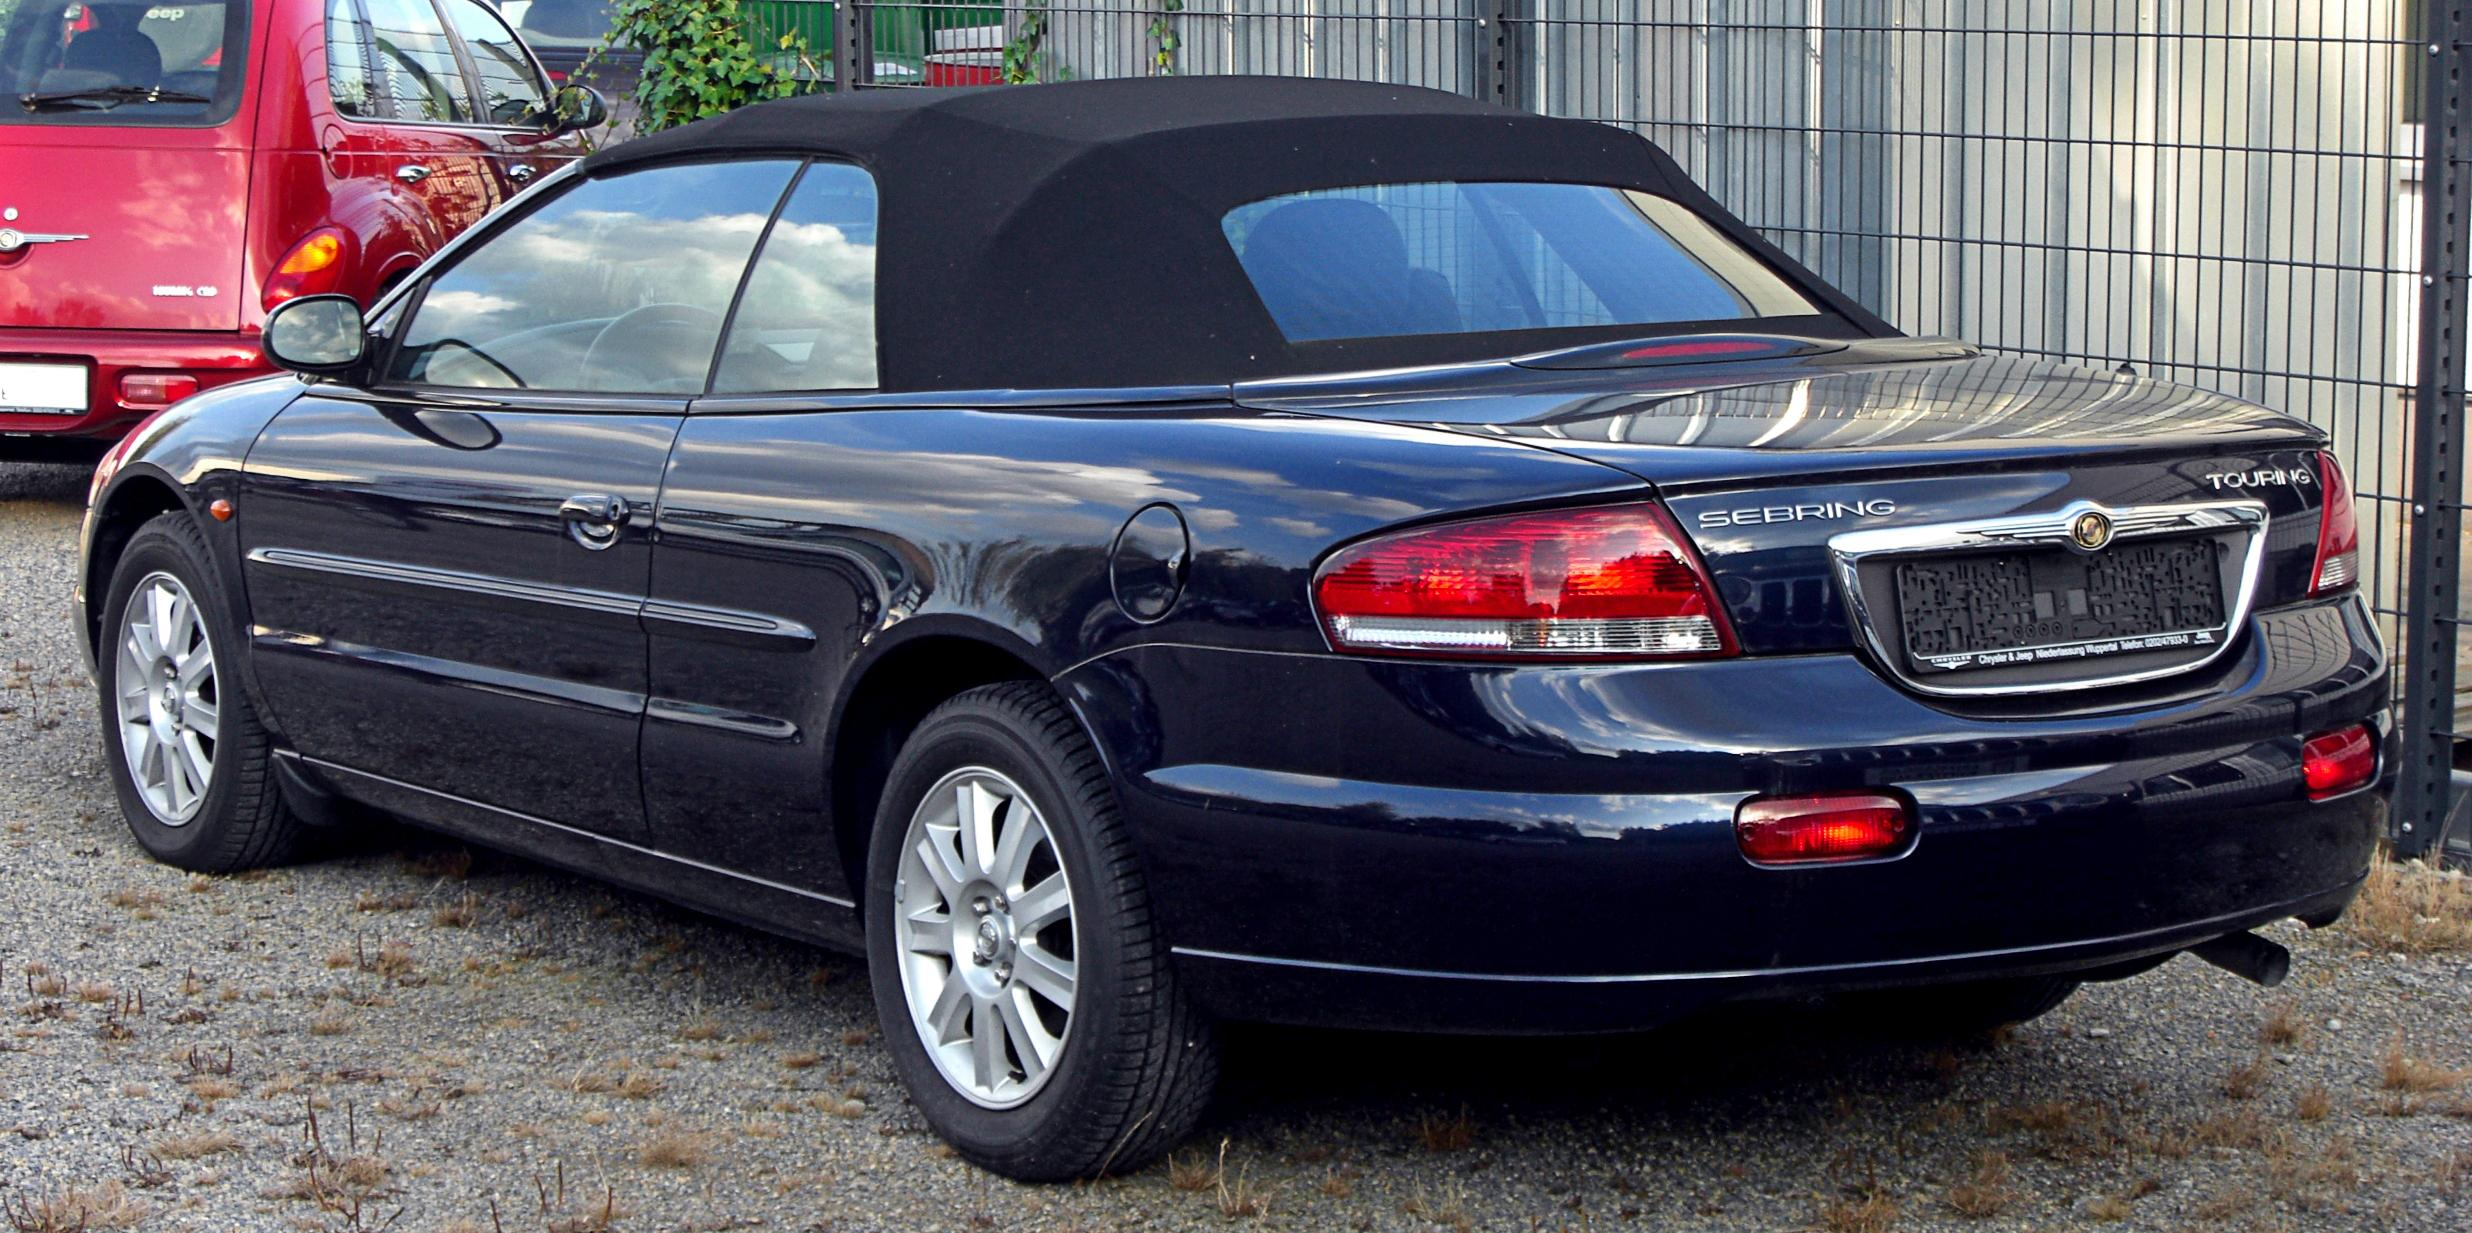 file chrysler sebring touring cabriolet facelift rear jpg wikimedia commons. Black Bedroom Furniture Sets. Home Design Ideas